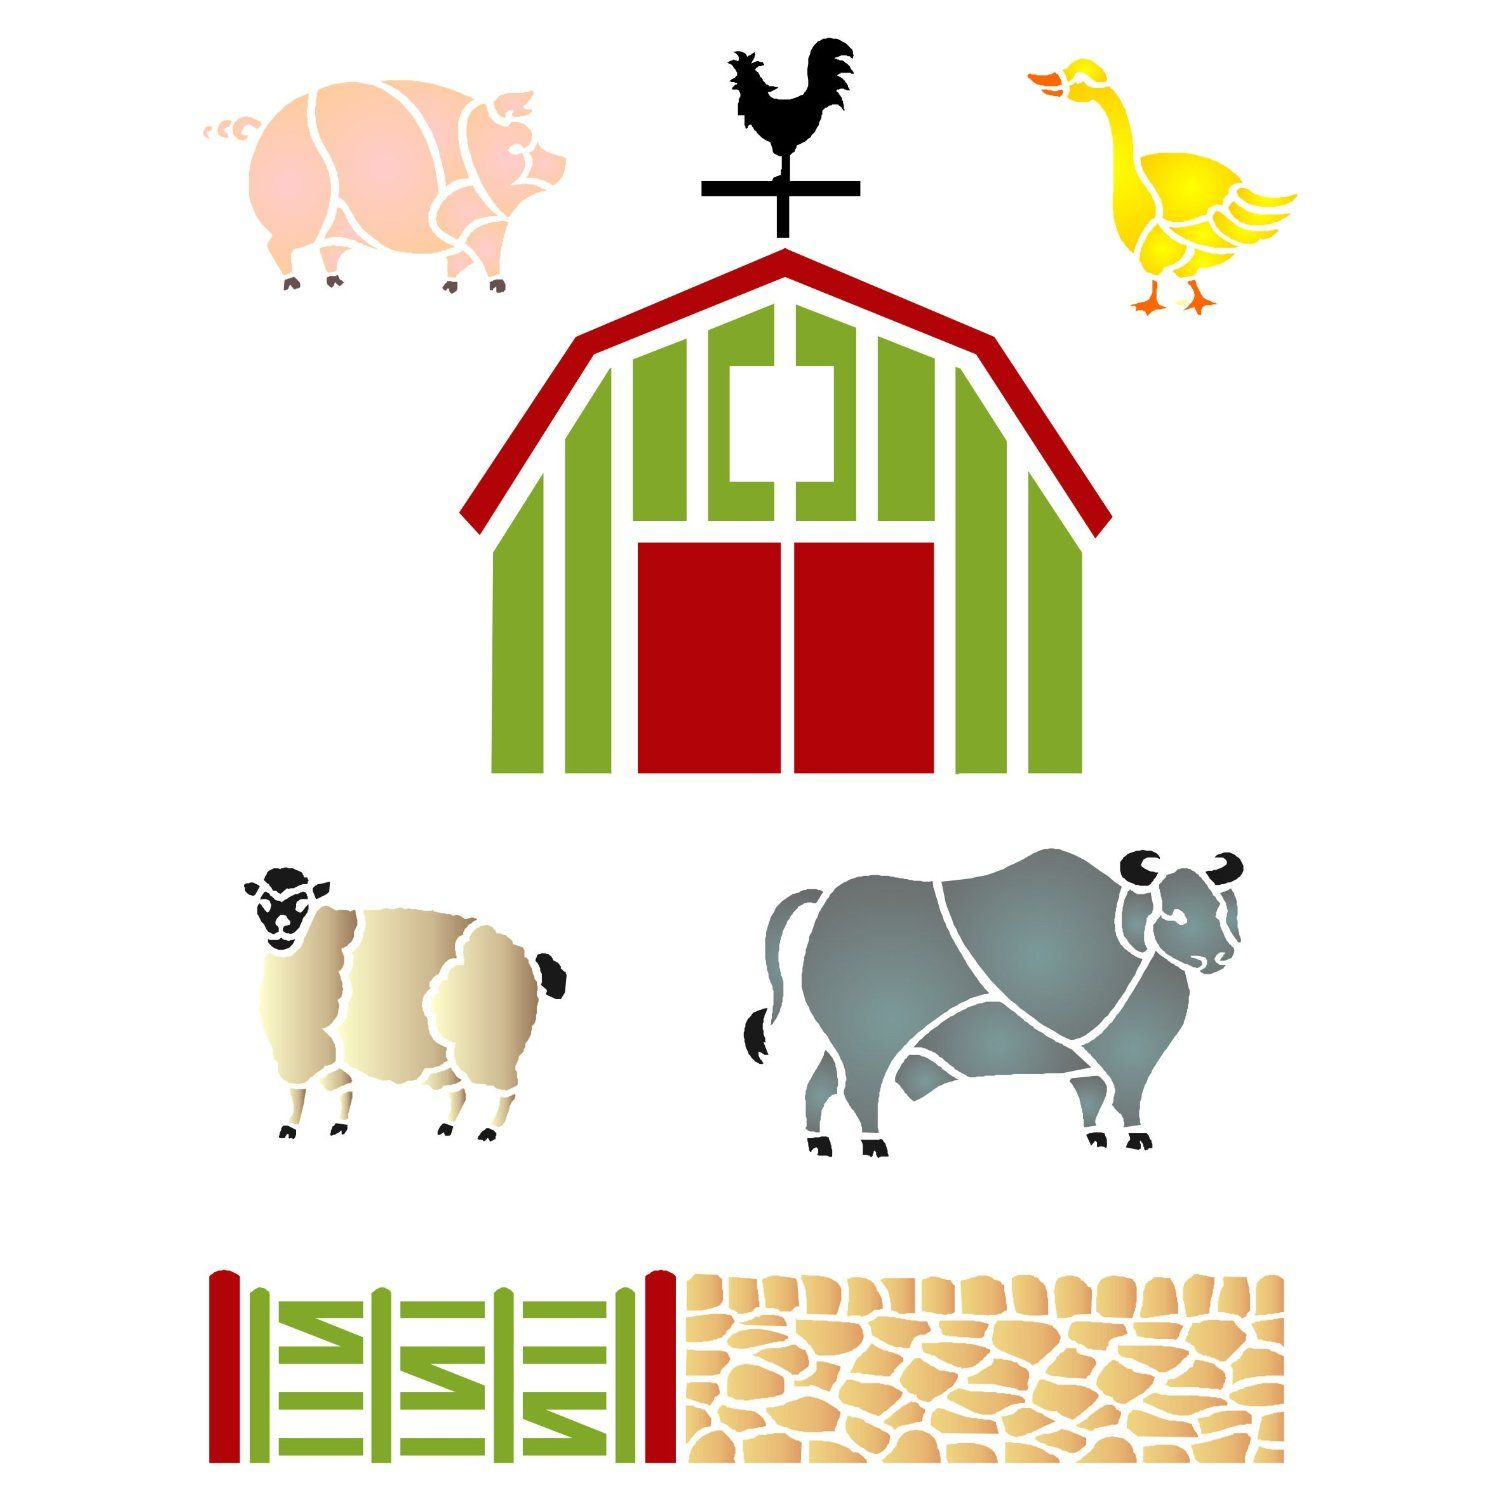 Amazon farm animal stencil size 65w x 85h reusable amazon farm animal stencil size 65w x 85h reusable wall stencils for painting best quality farm animals and barn ideas use on walls amipublicfo Gallery